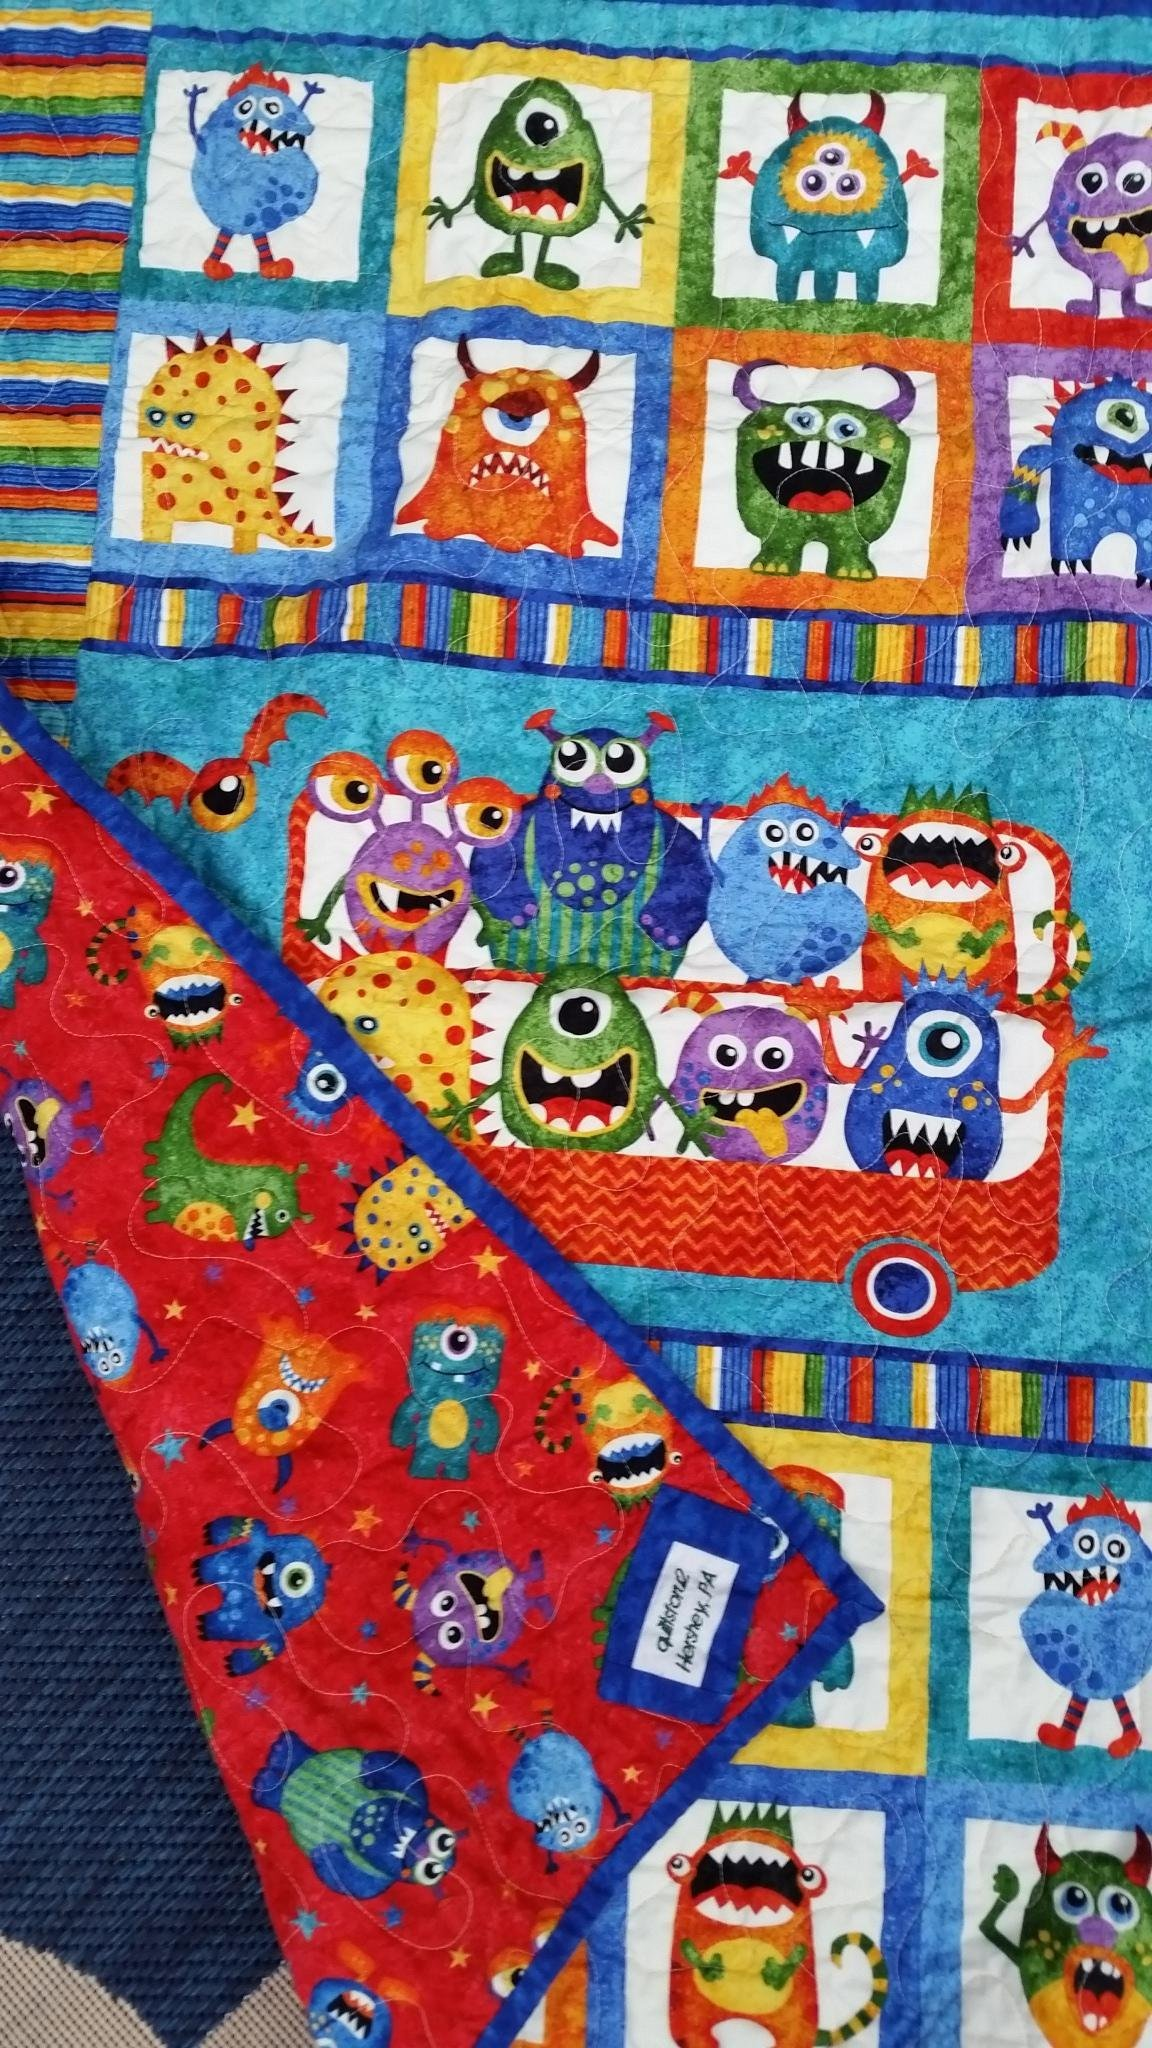 Monster Crib Quilt, Not Scary Monsters, Gender Neutral Crib Quilt, Girl Crib Quilt, Boy Crib Quilt, Primary Colors, Red Blue Green Yellow Orange, Monster Playmat